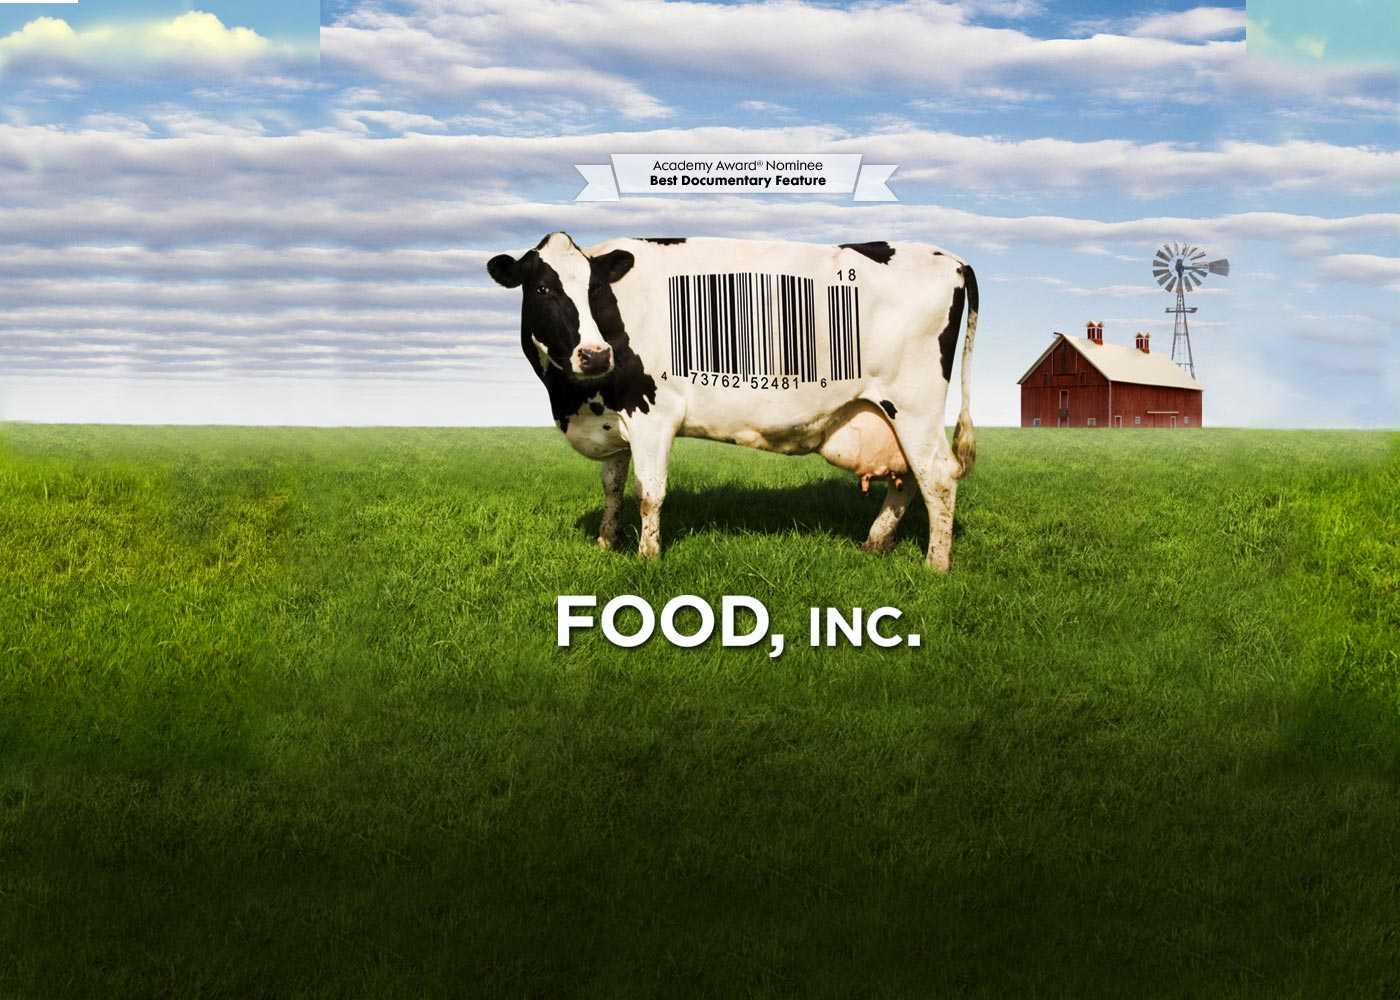 FOOD INC. Documentar care denunta SISTEMUL ALIMENTAR INDUSTRIAL. Obezitate si diabet pentru profit corporatist (Video)